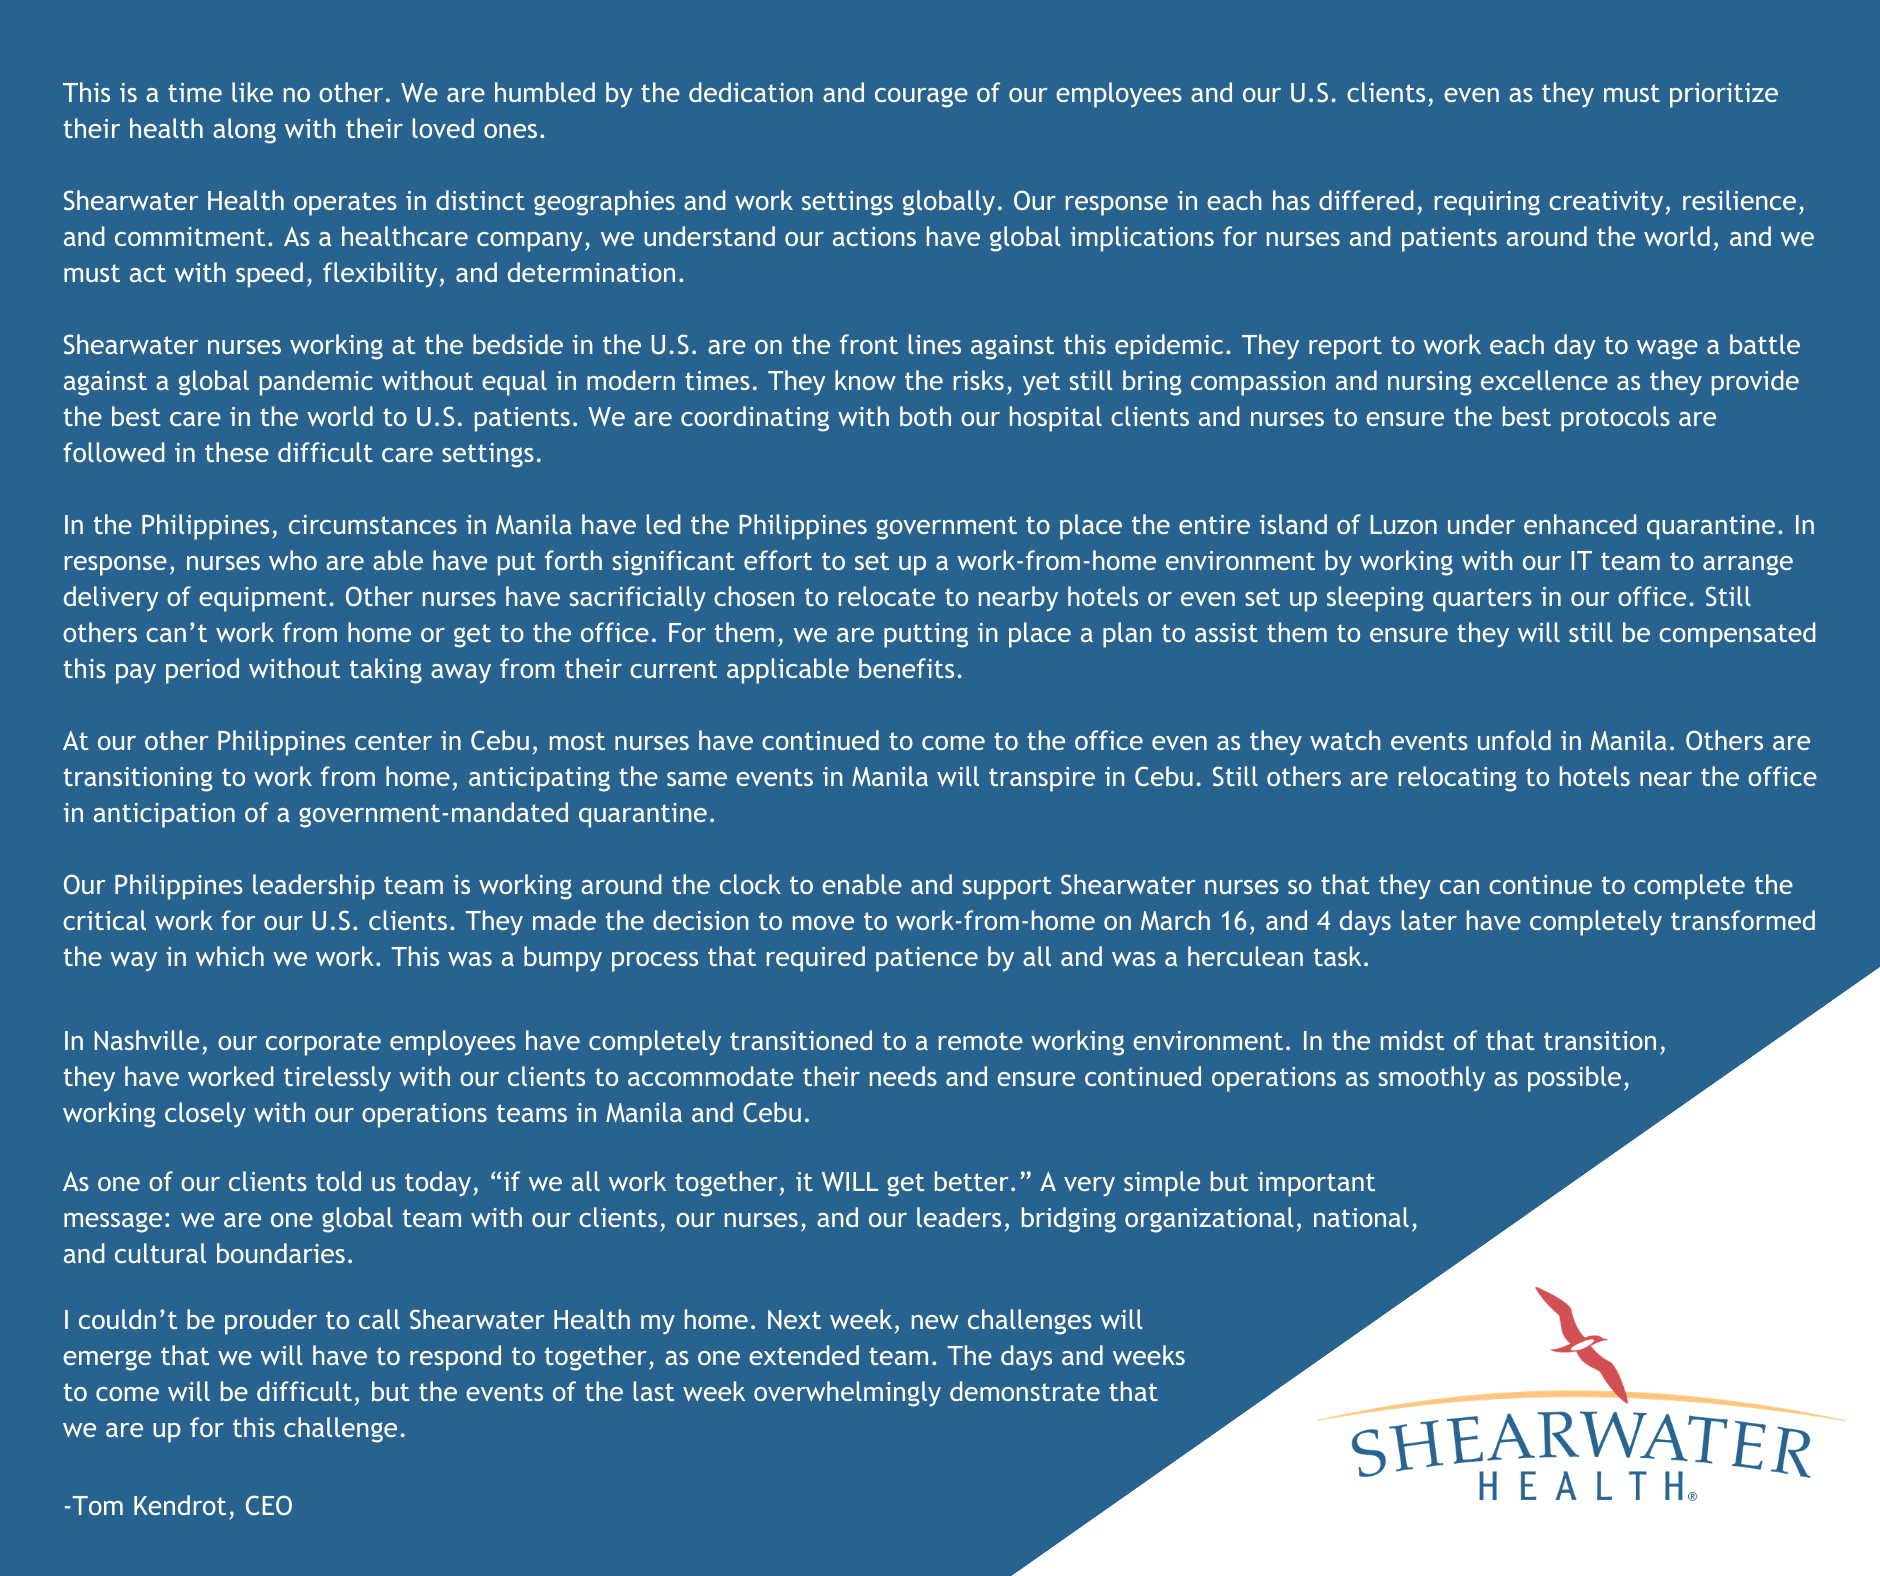 COVID-19 Message from Shearwater CEO Tom Kendrot